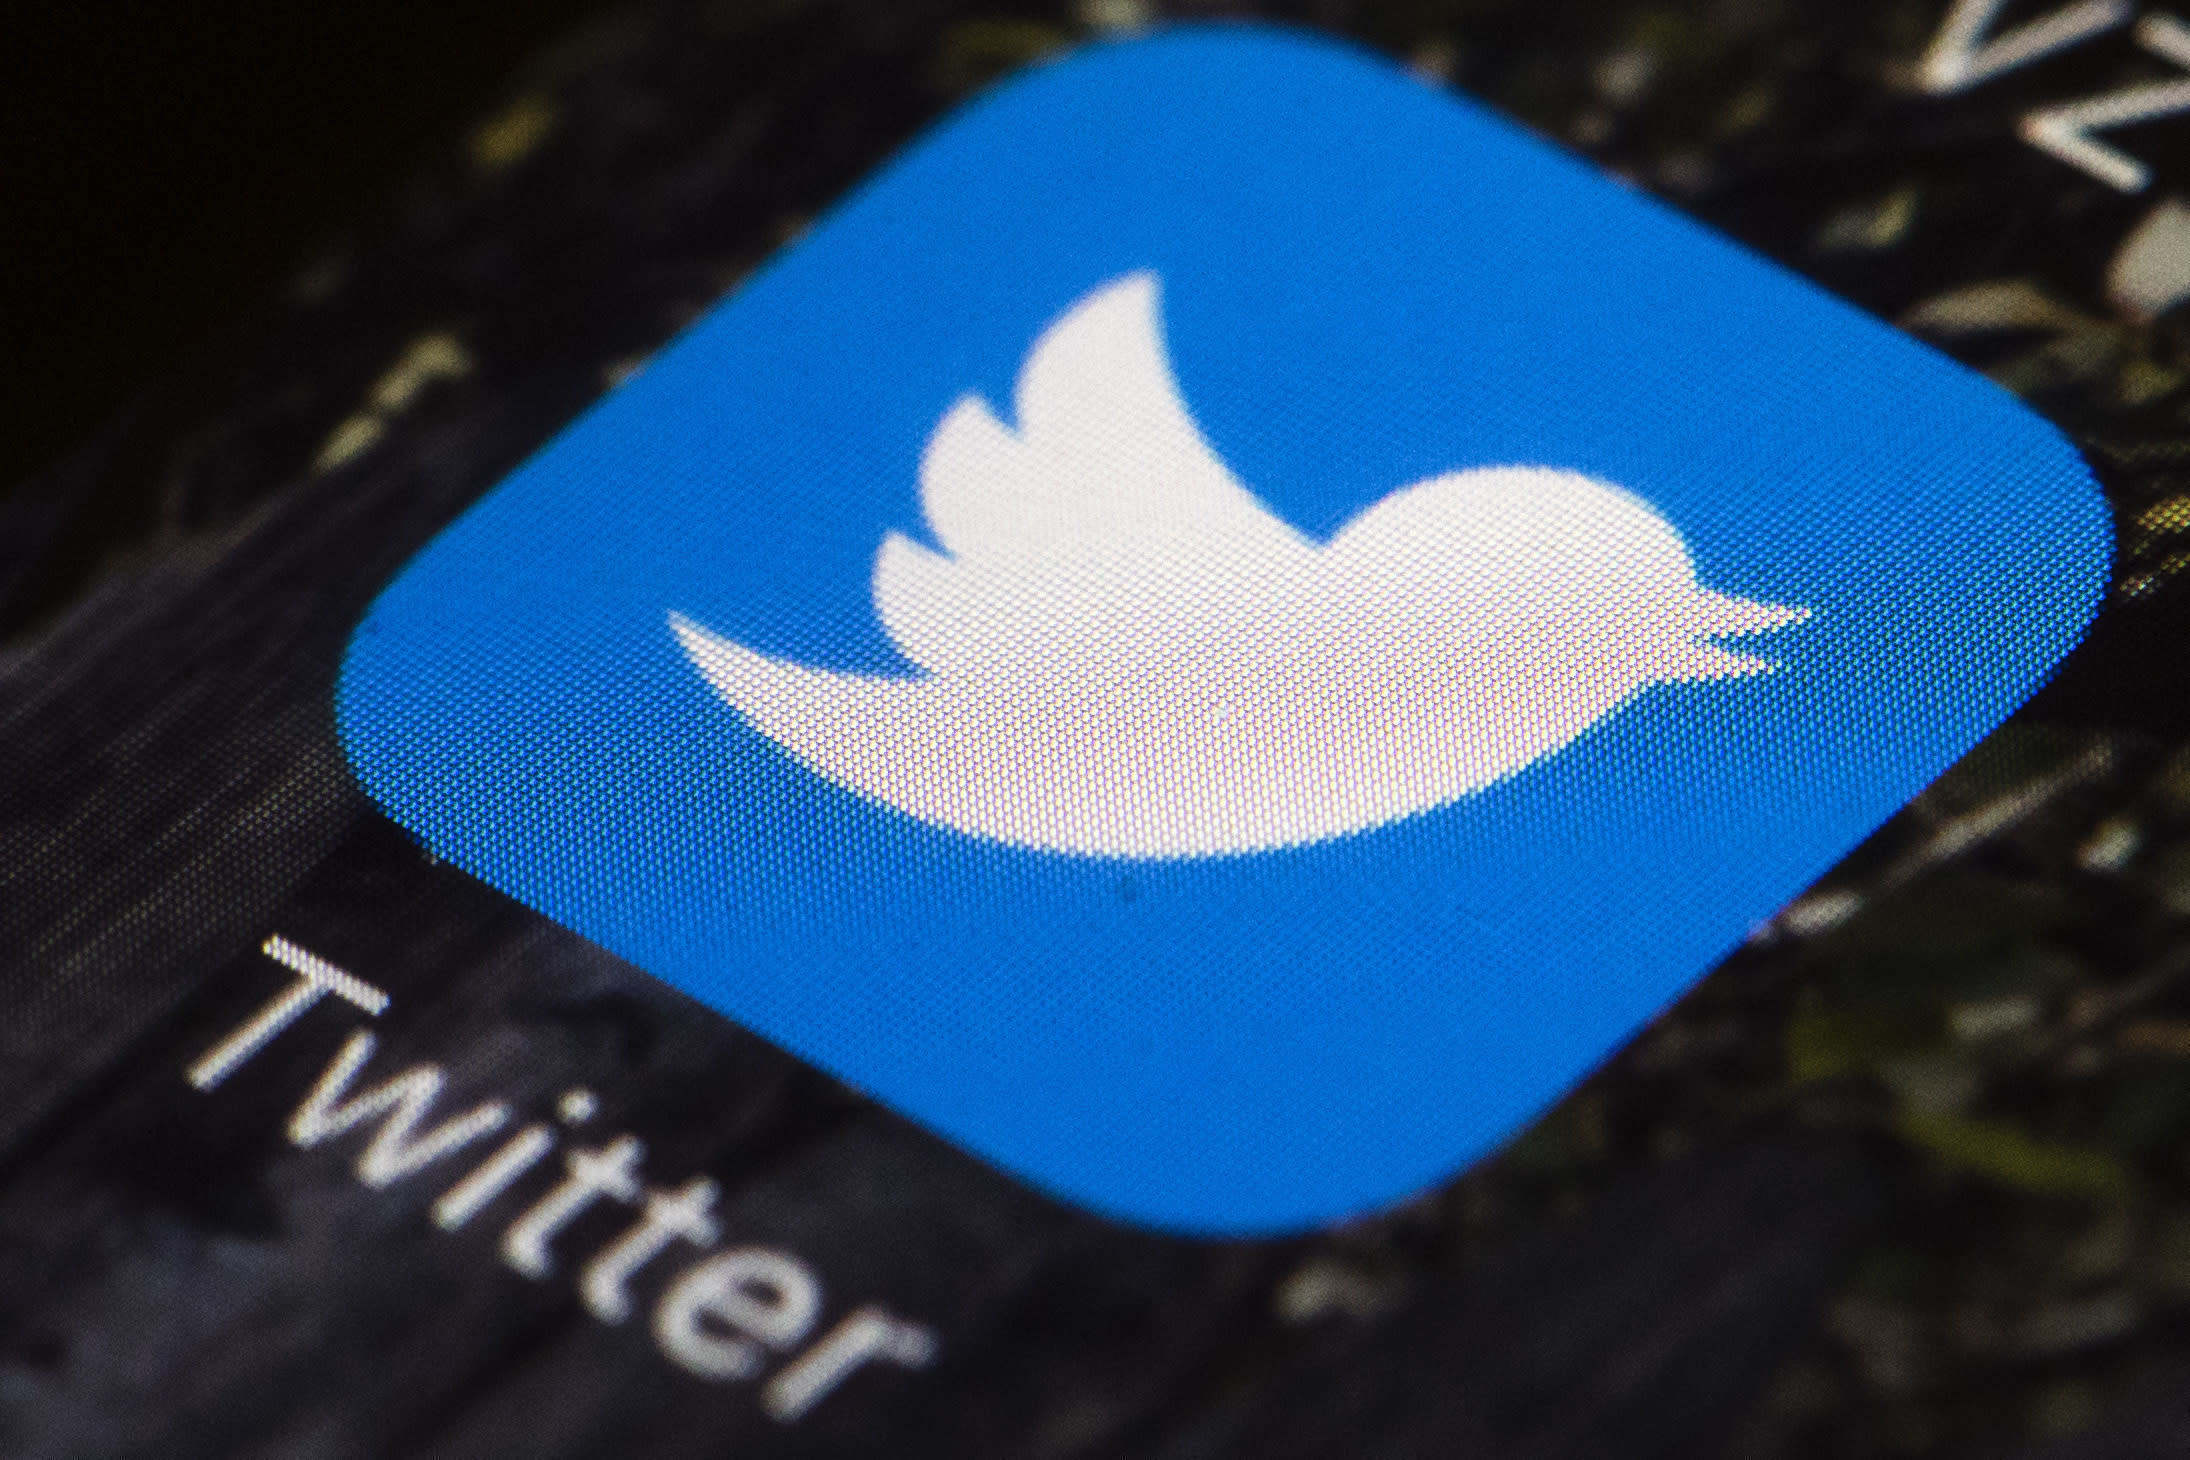 How a coveted Twitter handle led to a man's death